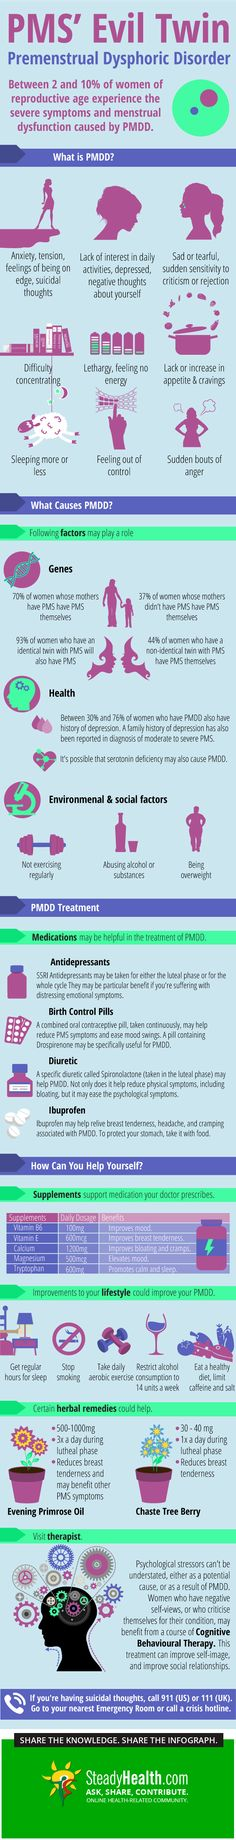 Premenstrual Dysphoric Disorder (PMDD) is the more severe sister of Premenstrual Syndrome (PMS). Here we look at how it can interfere with your life, and examine what you can do about it.